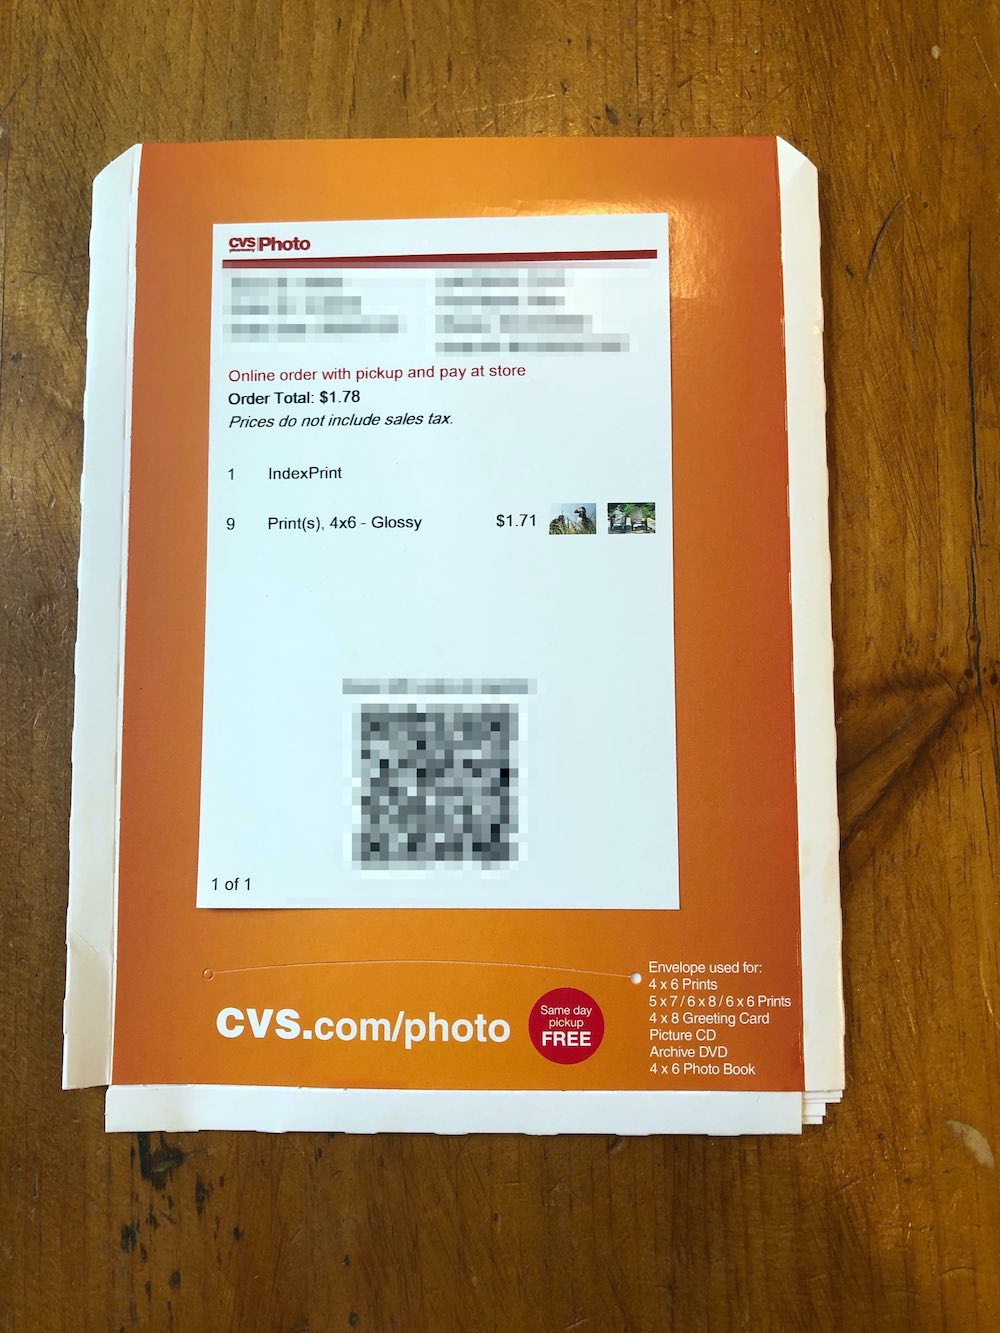 "Orange and white envelope with a white 4x6 receipt stuck on the center. At the top of the receipt is the CVS Photo logo and a red bar. Below that is some blurred text. Below that is red text reading ""Online order with pickup and pay at store"" followed by black text reading ""Order Total: $1.78m, Prices do not include sales tax."" Then, two lines reading ""1. IndexPrint 9. Print(s) 4x6 Glossy $1.71"" followed by two thumbnail images of a bird and a man sitting on a chair with trees behind him. A blurred out QR code. At the bottom of the envelope in white and red text over the orange reads ""CVS.com/photo"" in large text followed by smaller text on the lower right: ""Envelopes used for: 4x6 prints, 5x7, 6x8, 6x6 Prints, 4x8 Greeting Card, Picture CD, Archive DVD, 4x6 Photo Book."" The envelope is positioned vertically. It's not a perfect rectangle: The corners are kind of a cut out triangle on the top and missing small squares in the lower corners, likely due to some kind of folding.  Envelope sitting on wood table top."